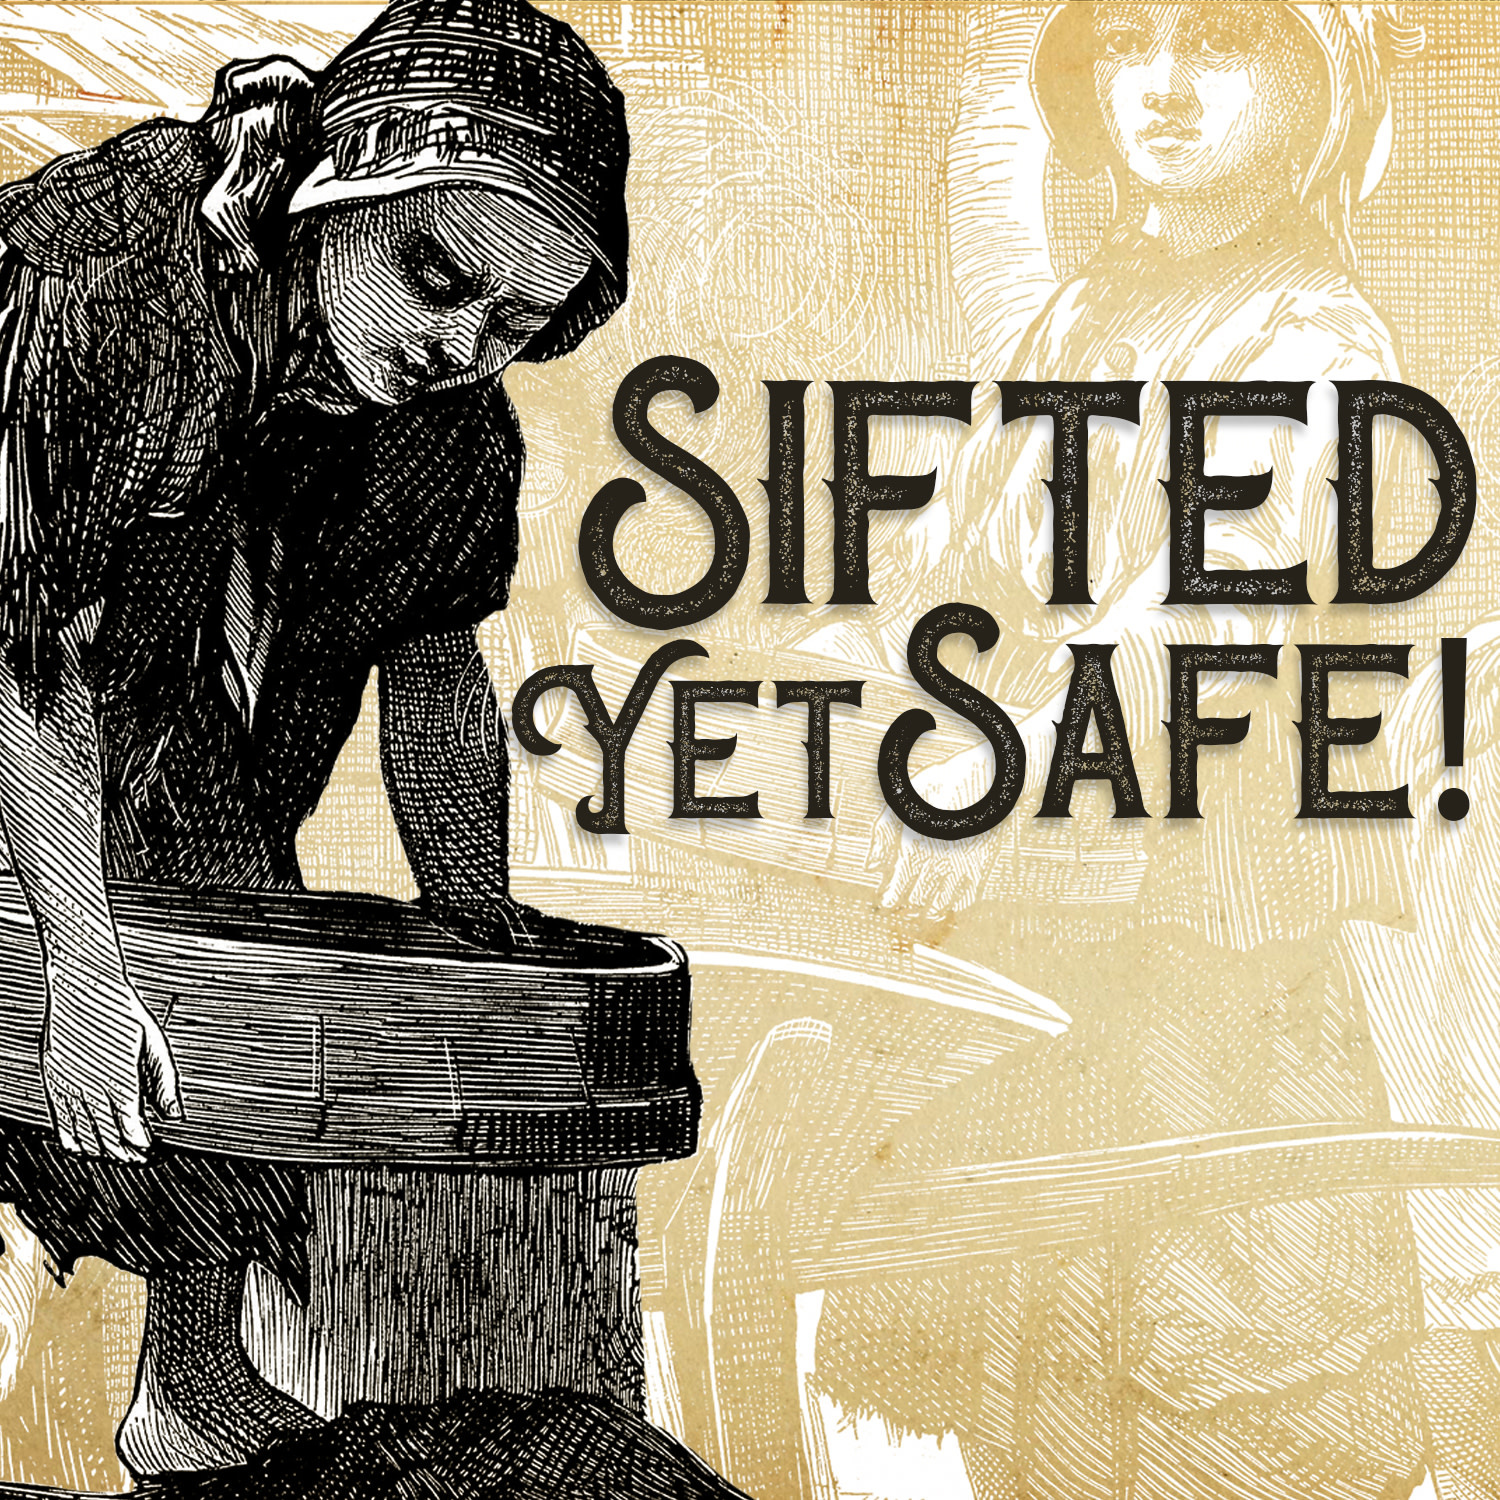 095 - Sifted Yet Safe By Pastor Jeff Wickwire | LT03557-1